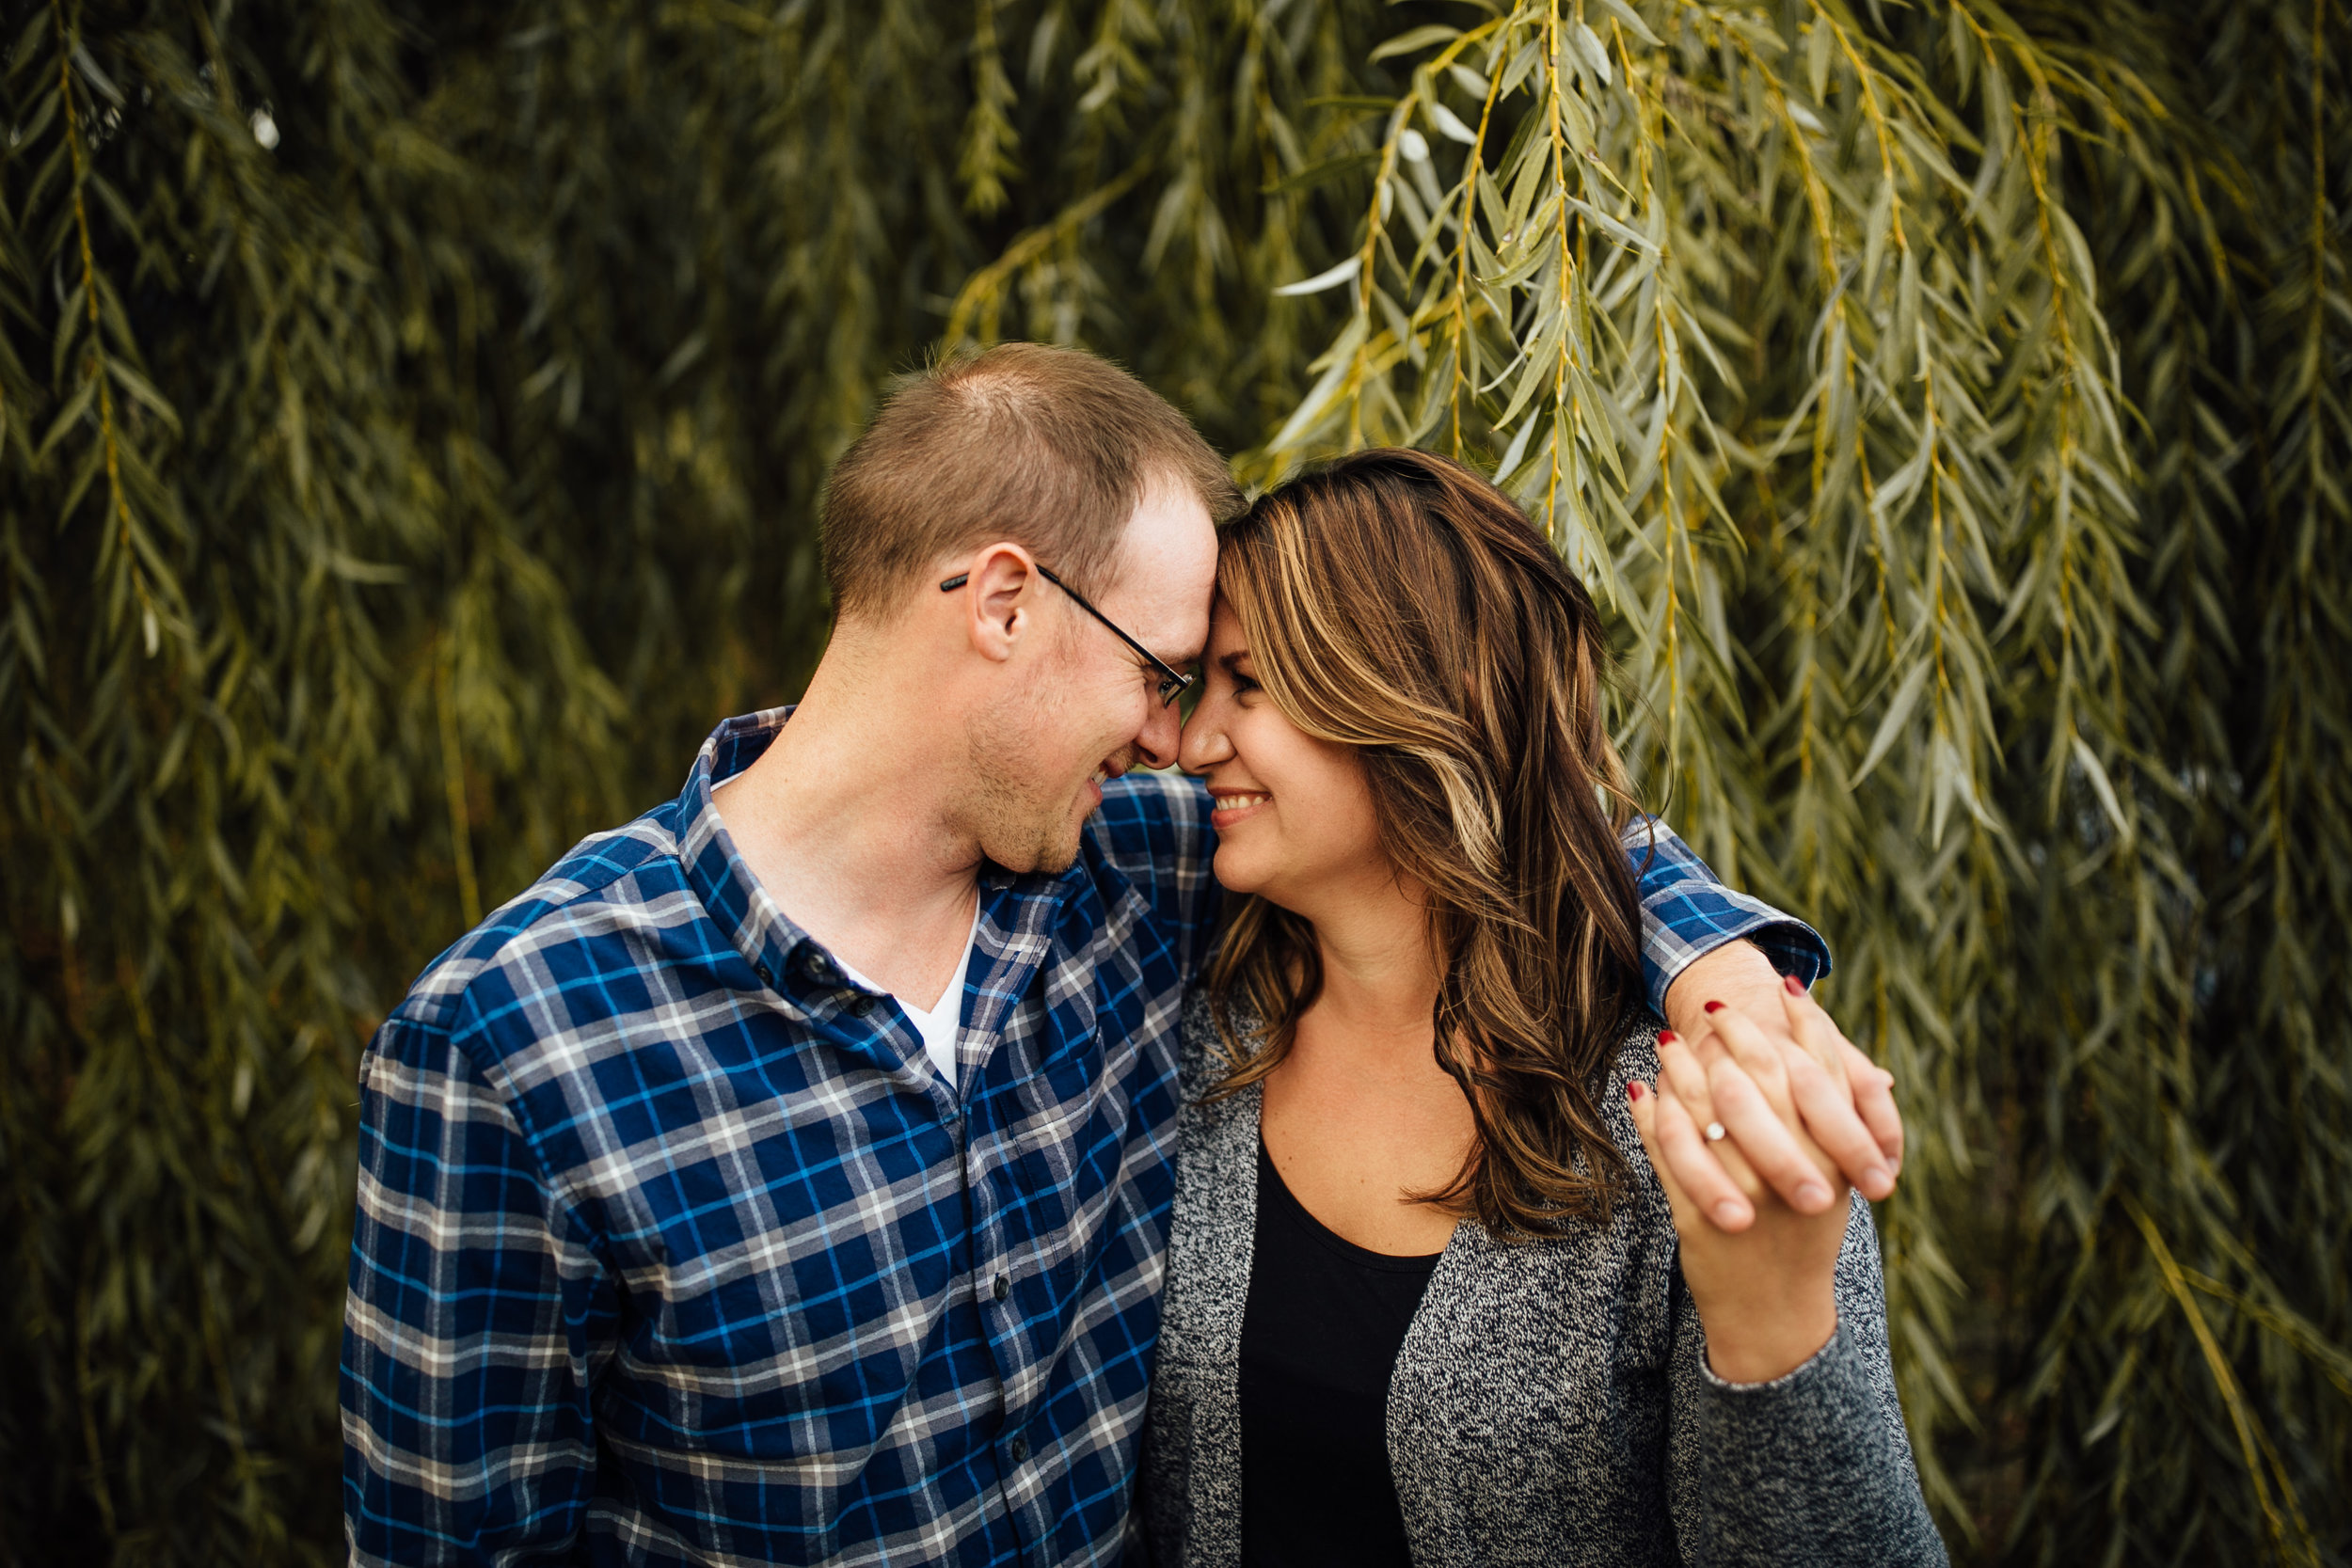 Kate-Nick-Grand-Rapids-Engagement-Michigan-Wedding-Photographer-53.jpg